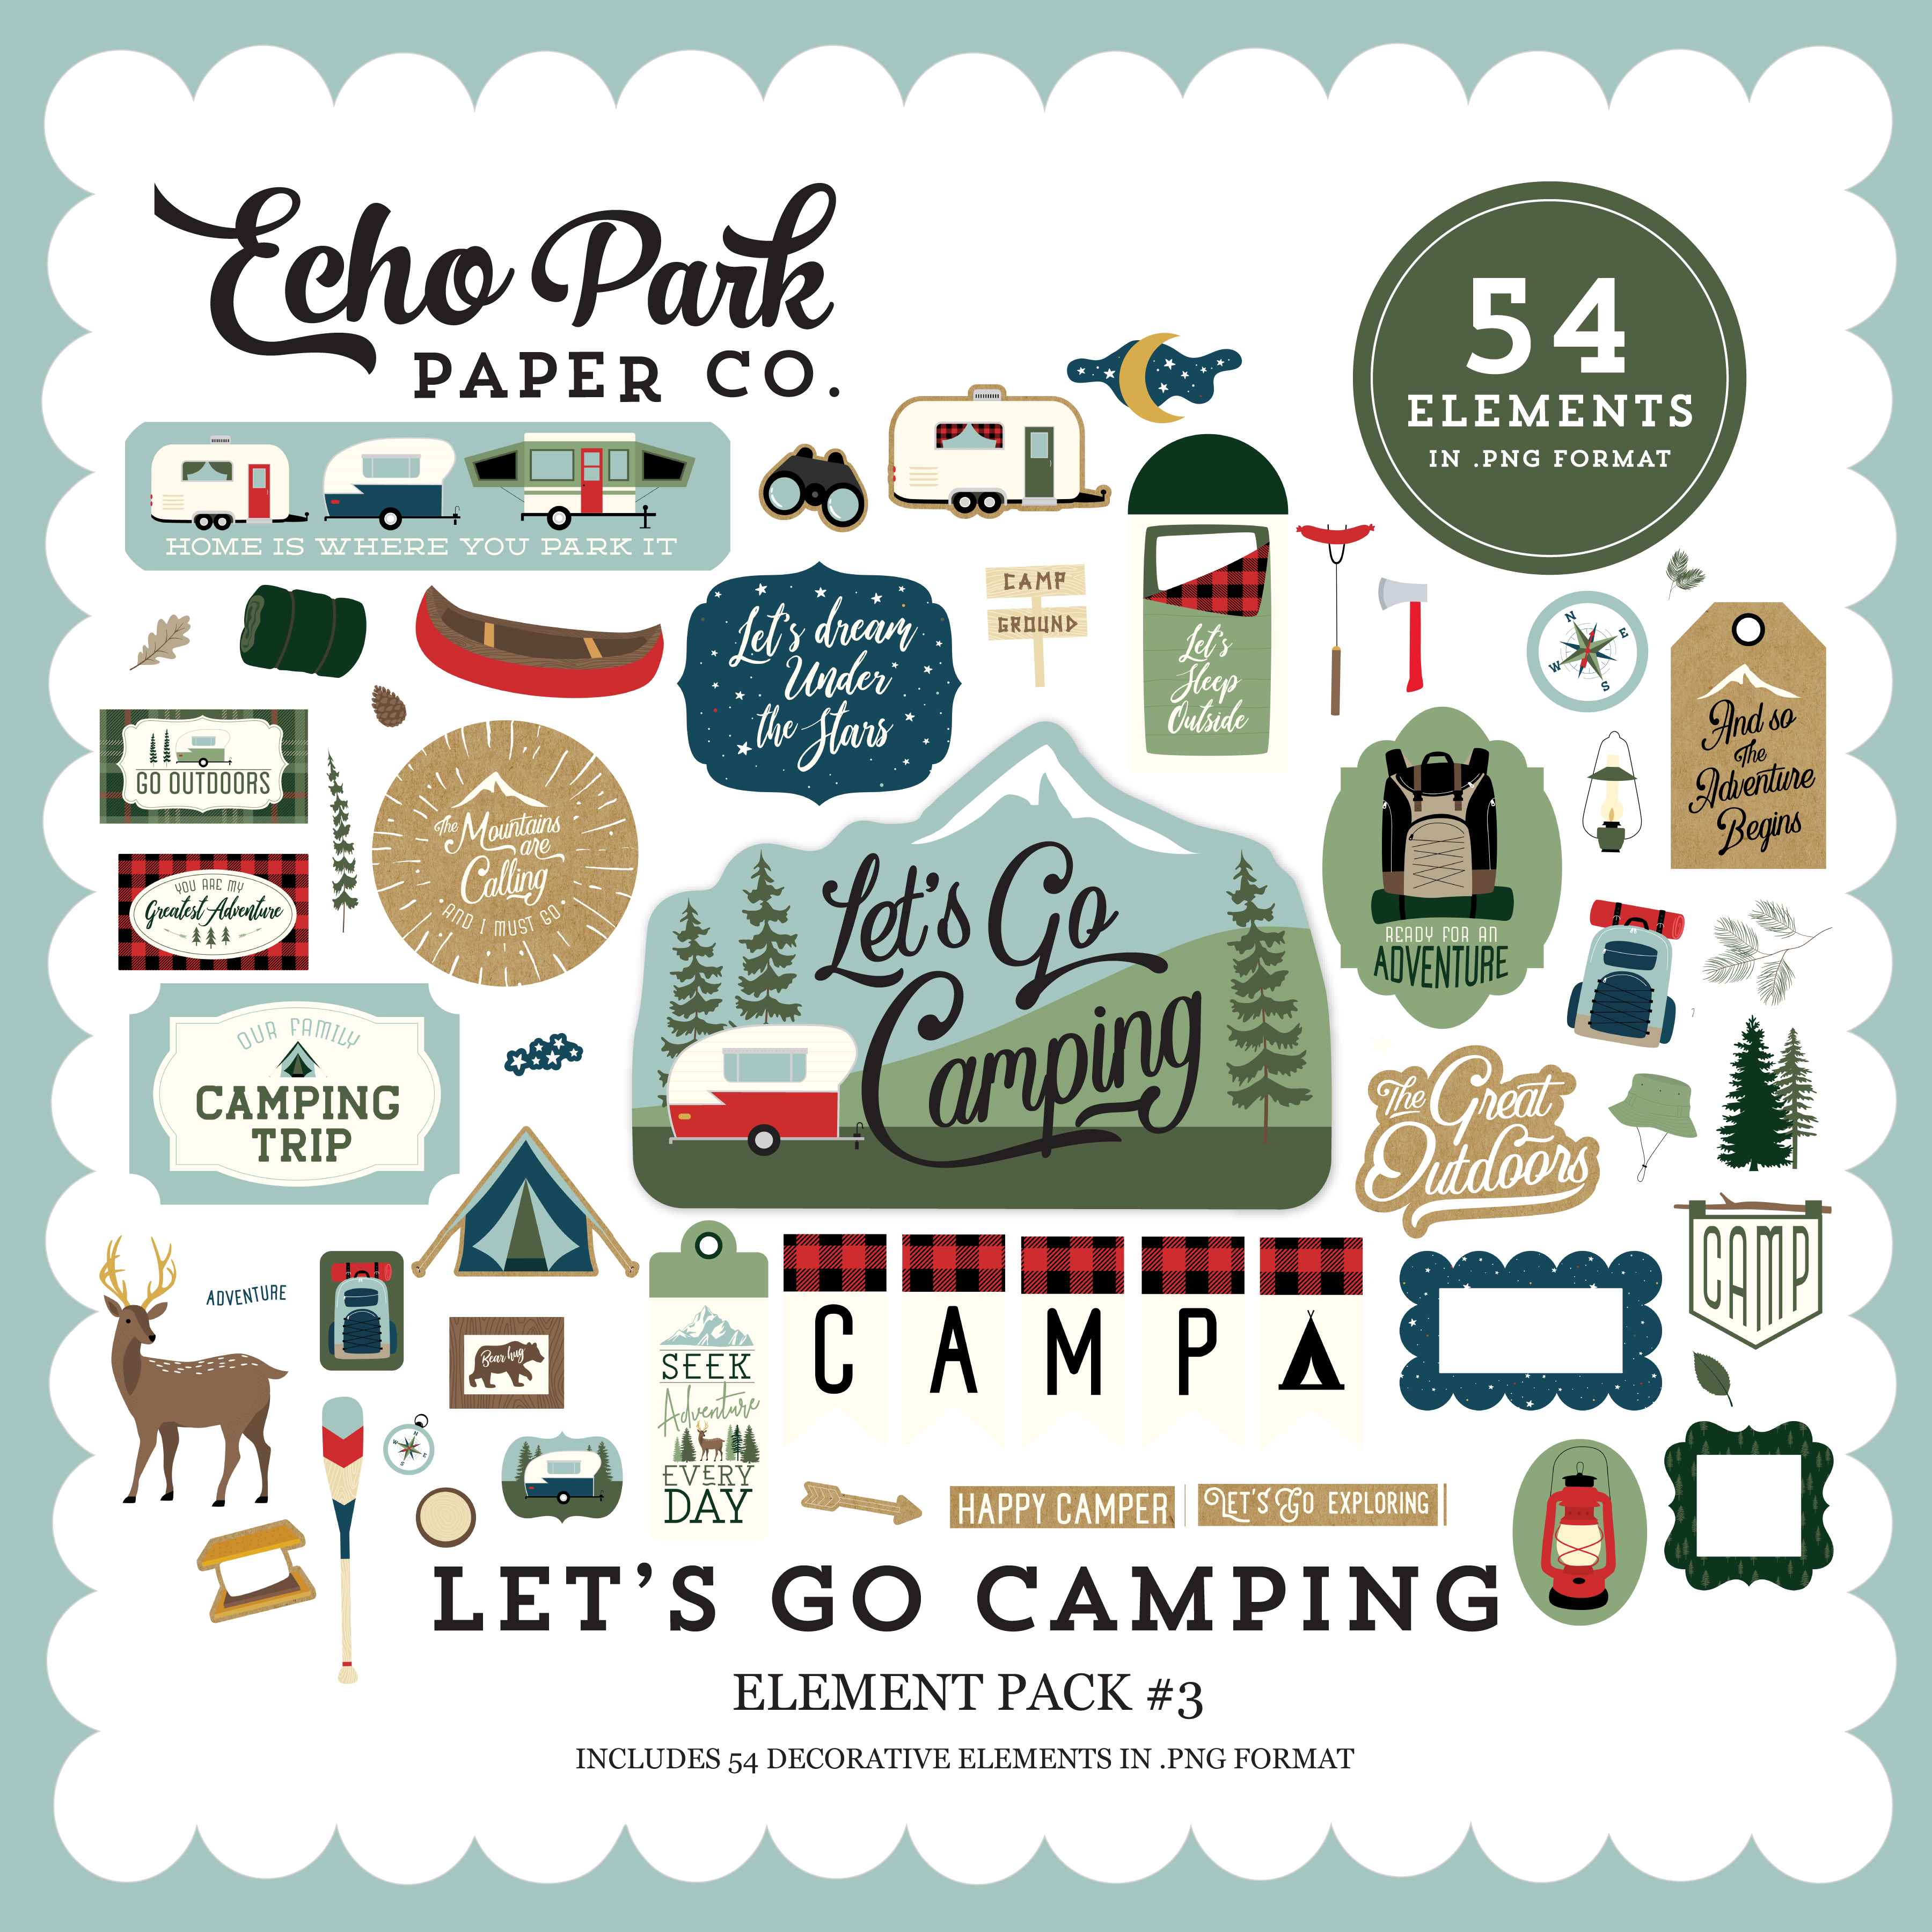 Let's Go Camping Element Pack #3